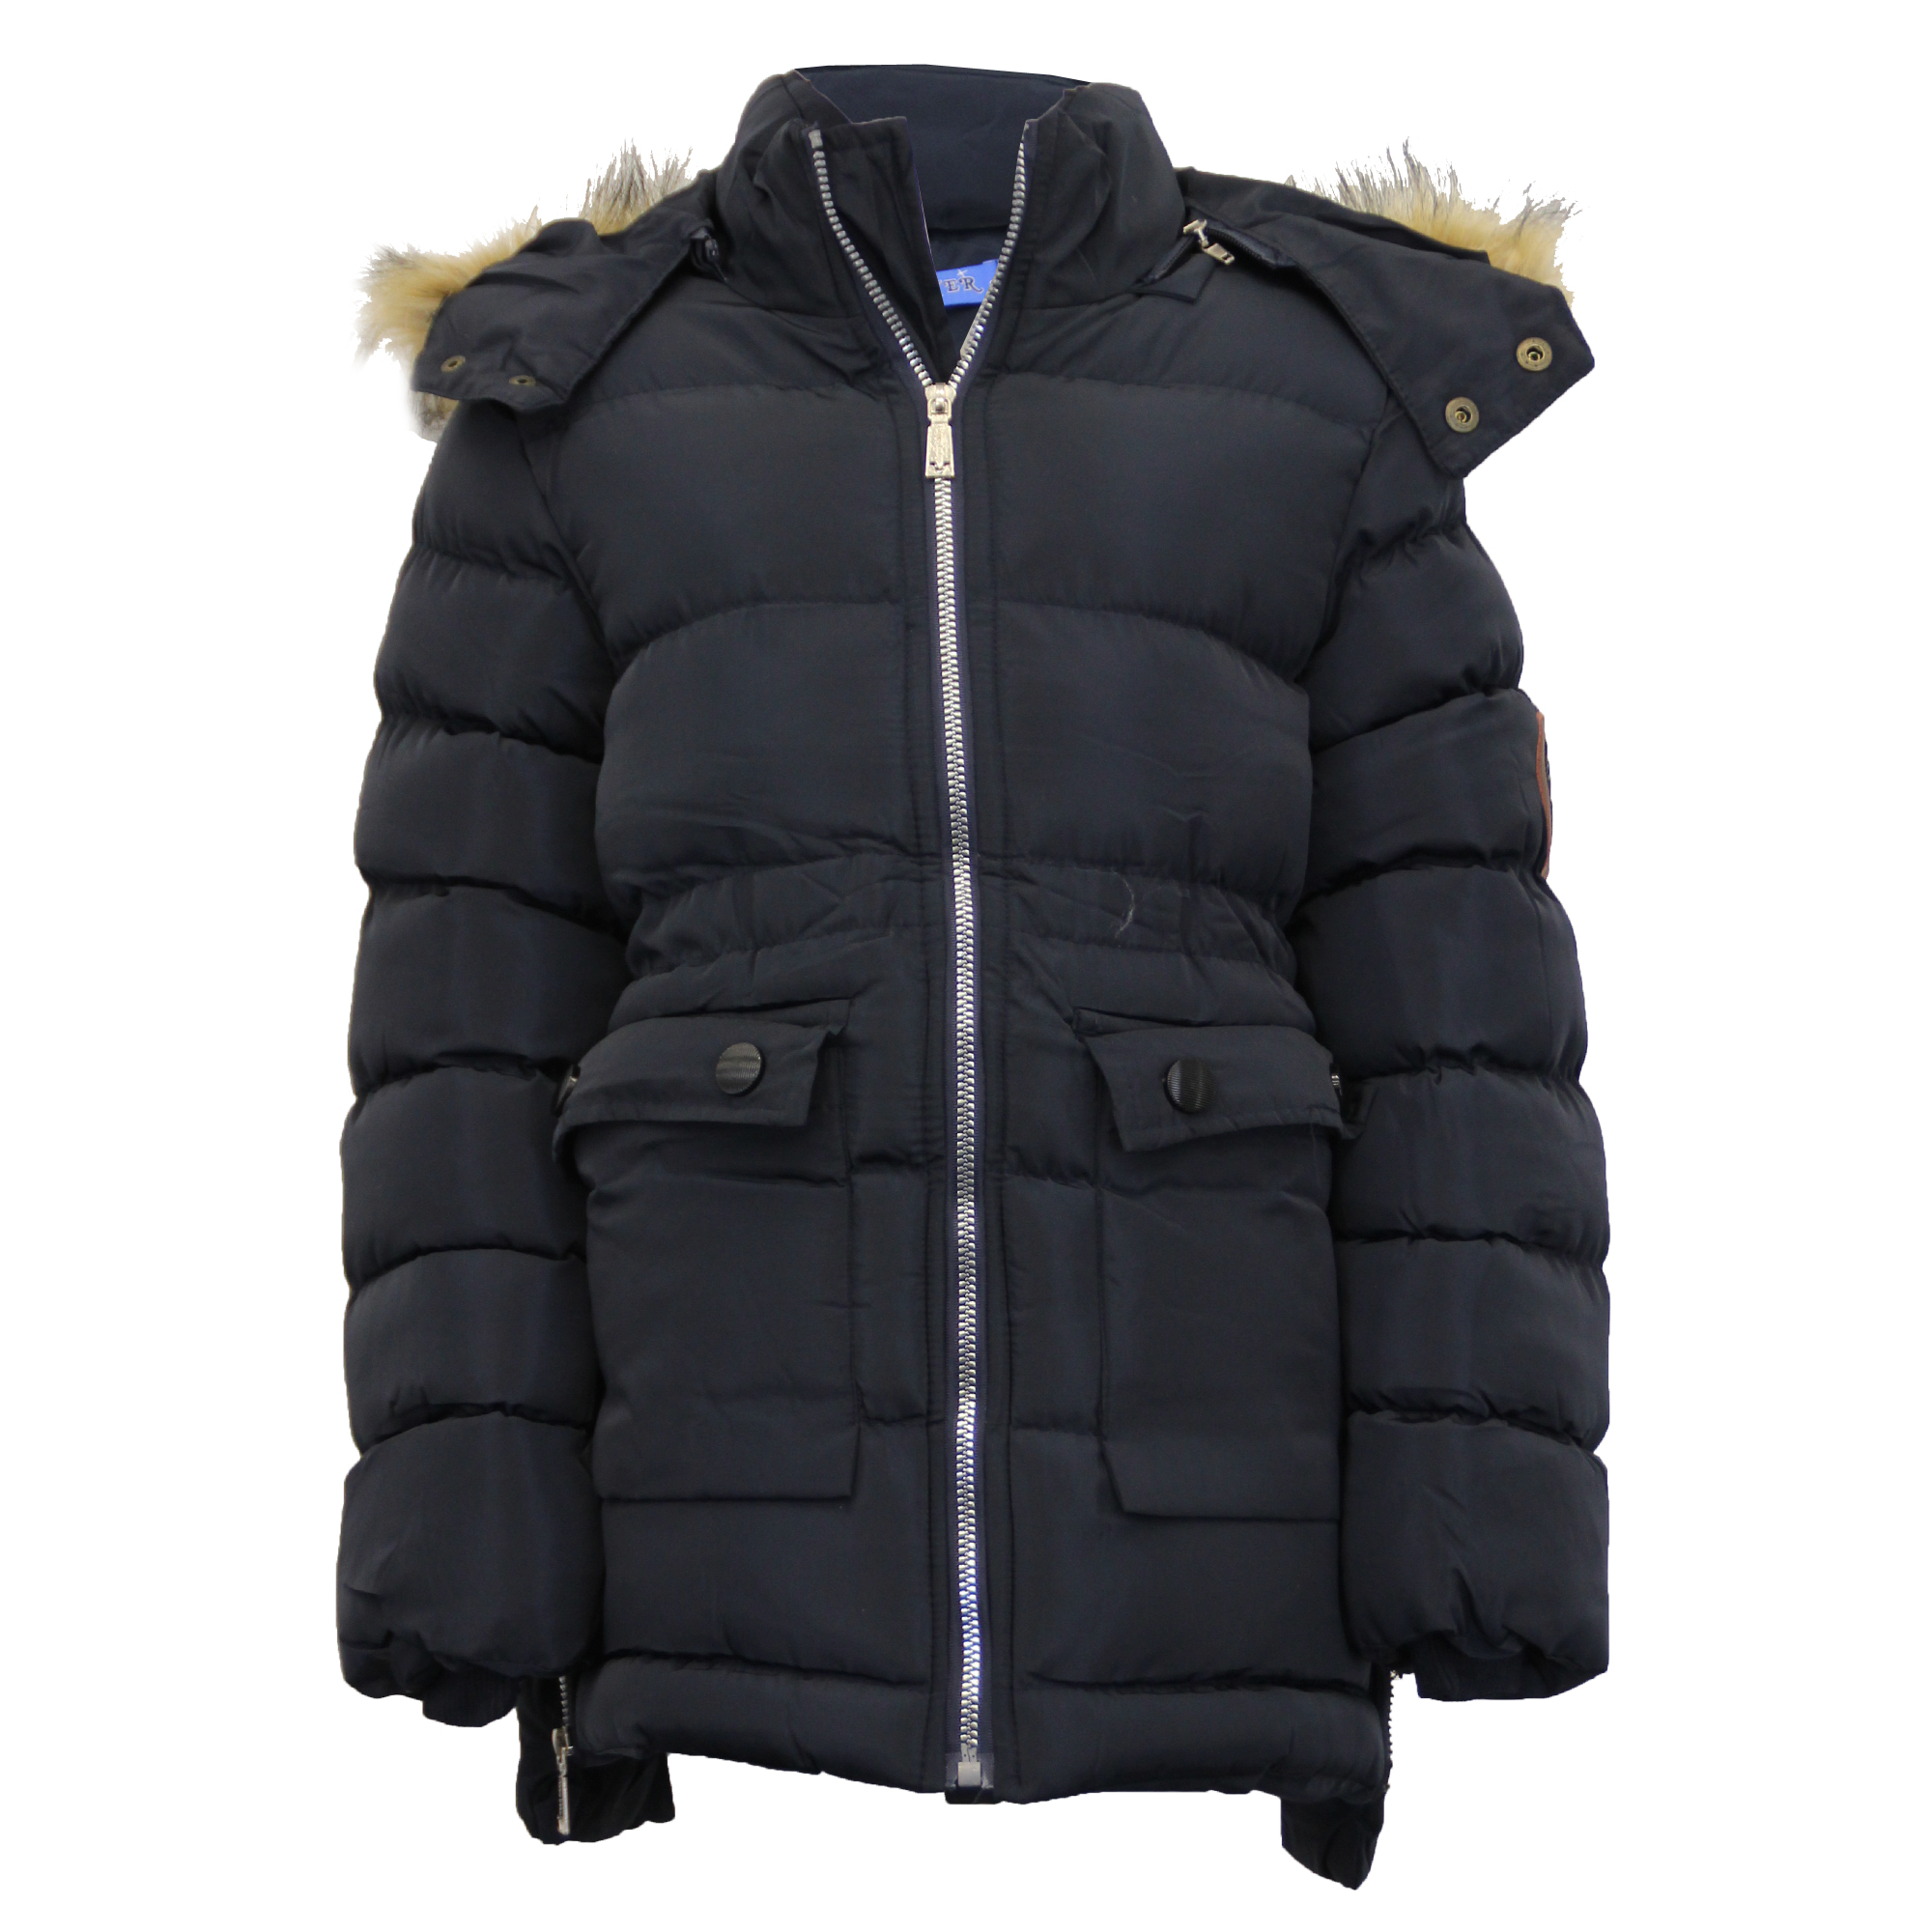 Warm and water-resistant our kids padded jackets are perfect for chilly, wet winter days. Our range of great value boys and girls padded jackets are available in a range of styles, lengths and colours that they are going to love.